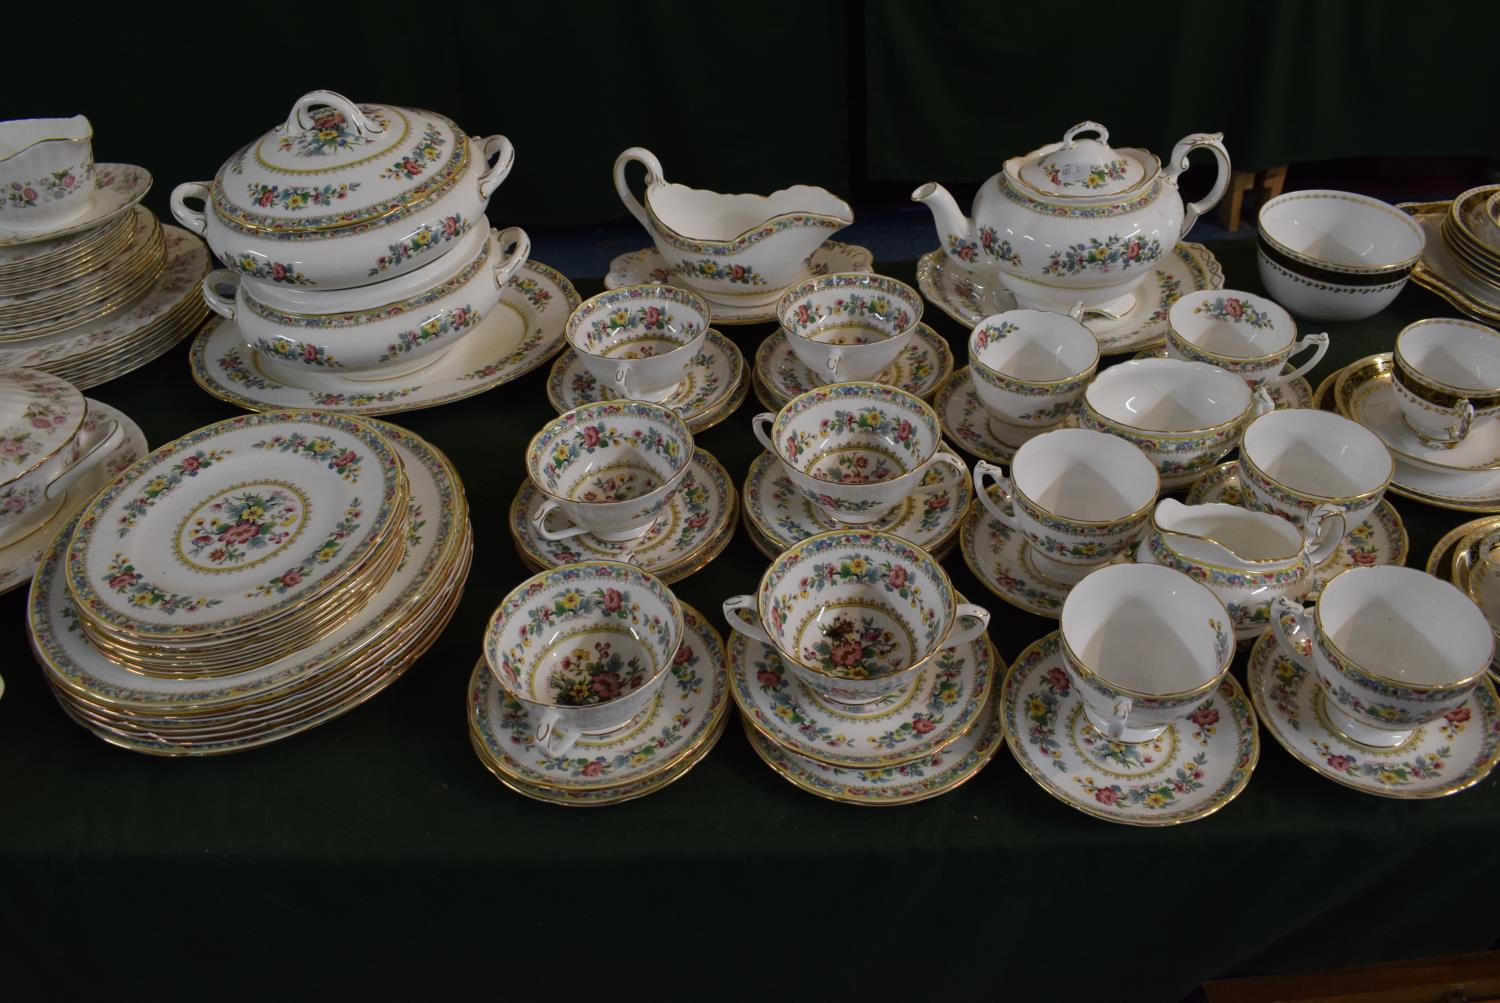 Lot 224 - A Large Collection of Coalport Ming Rose Dinner and Teawares to Include Six Dinner and Side